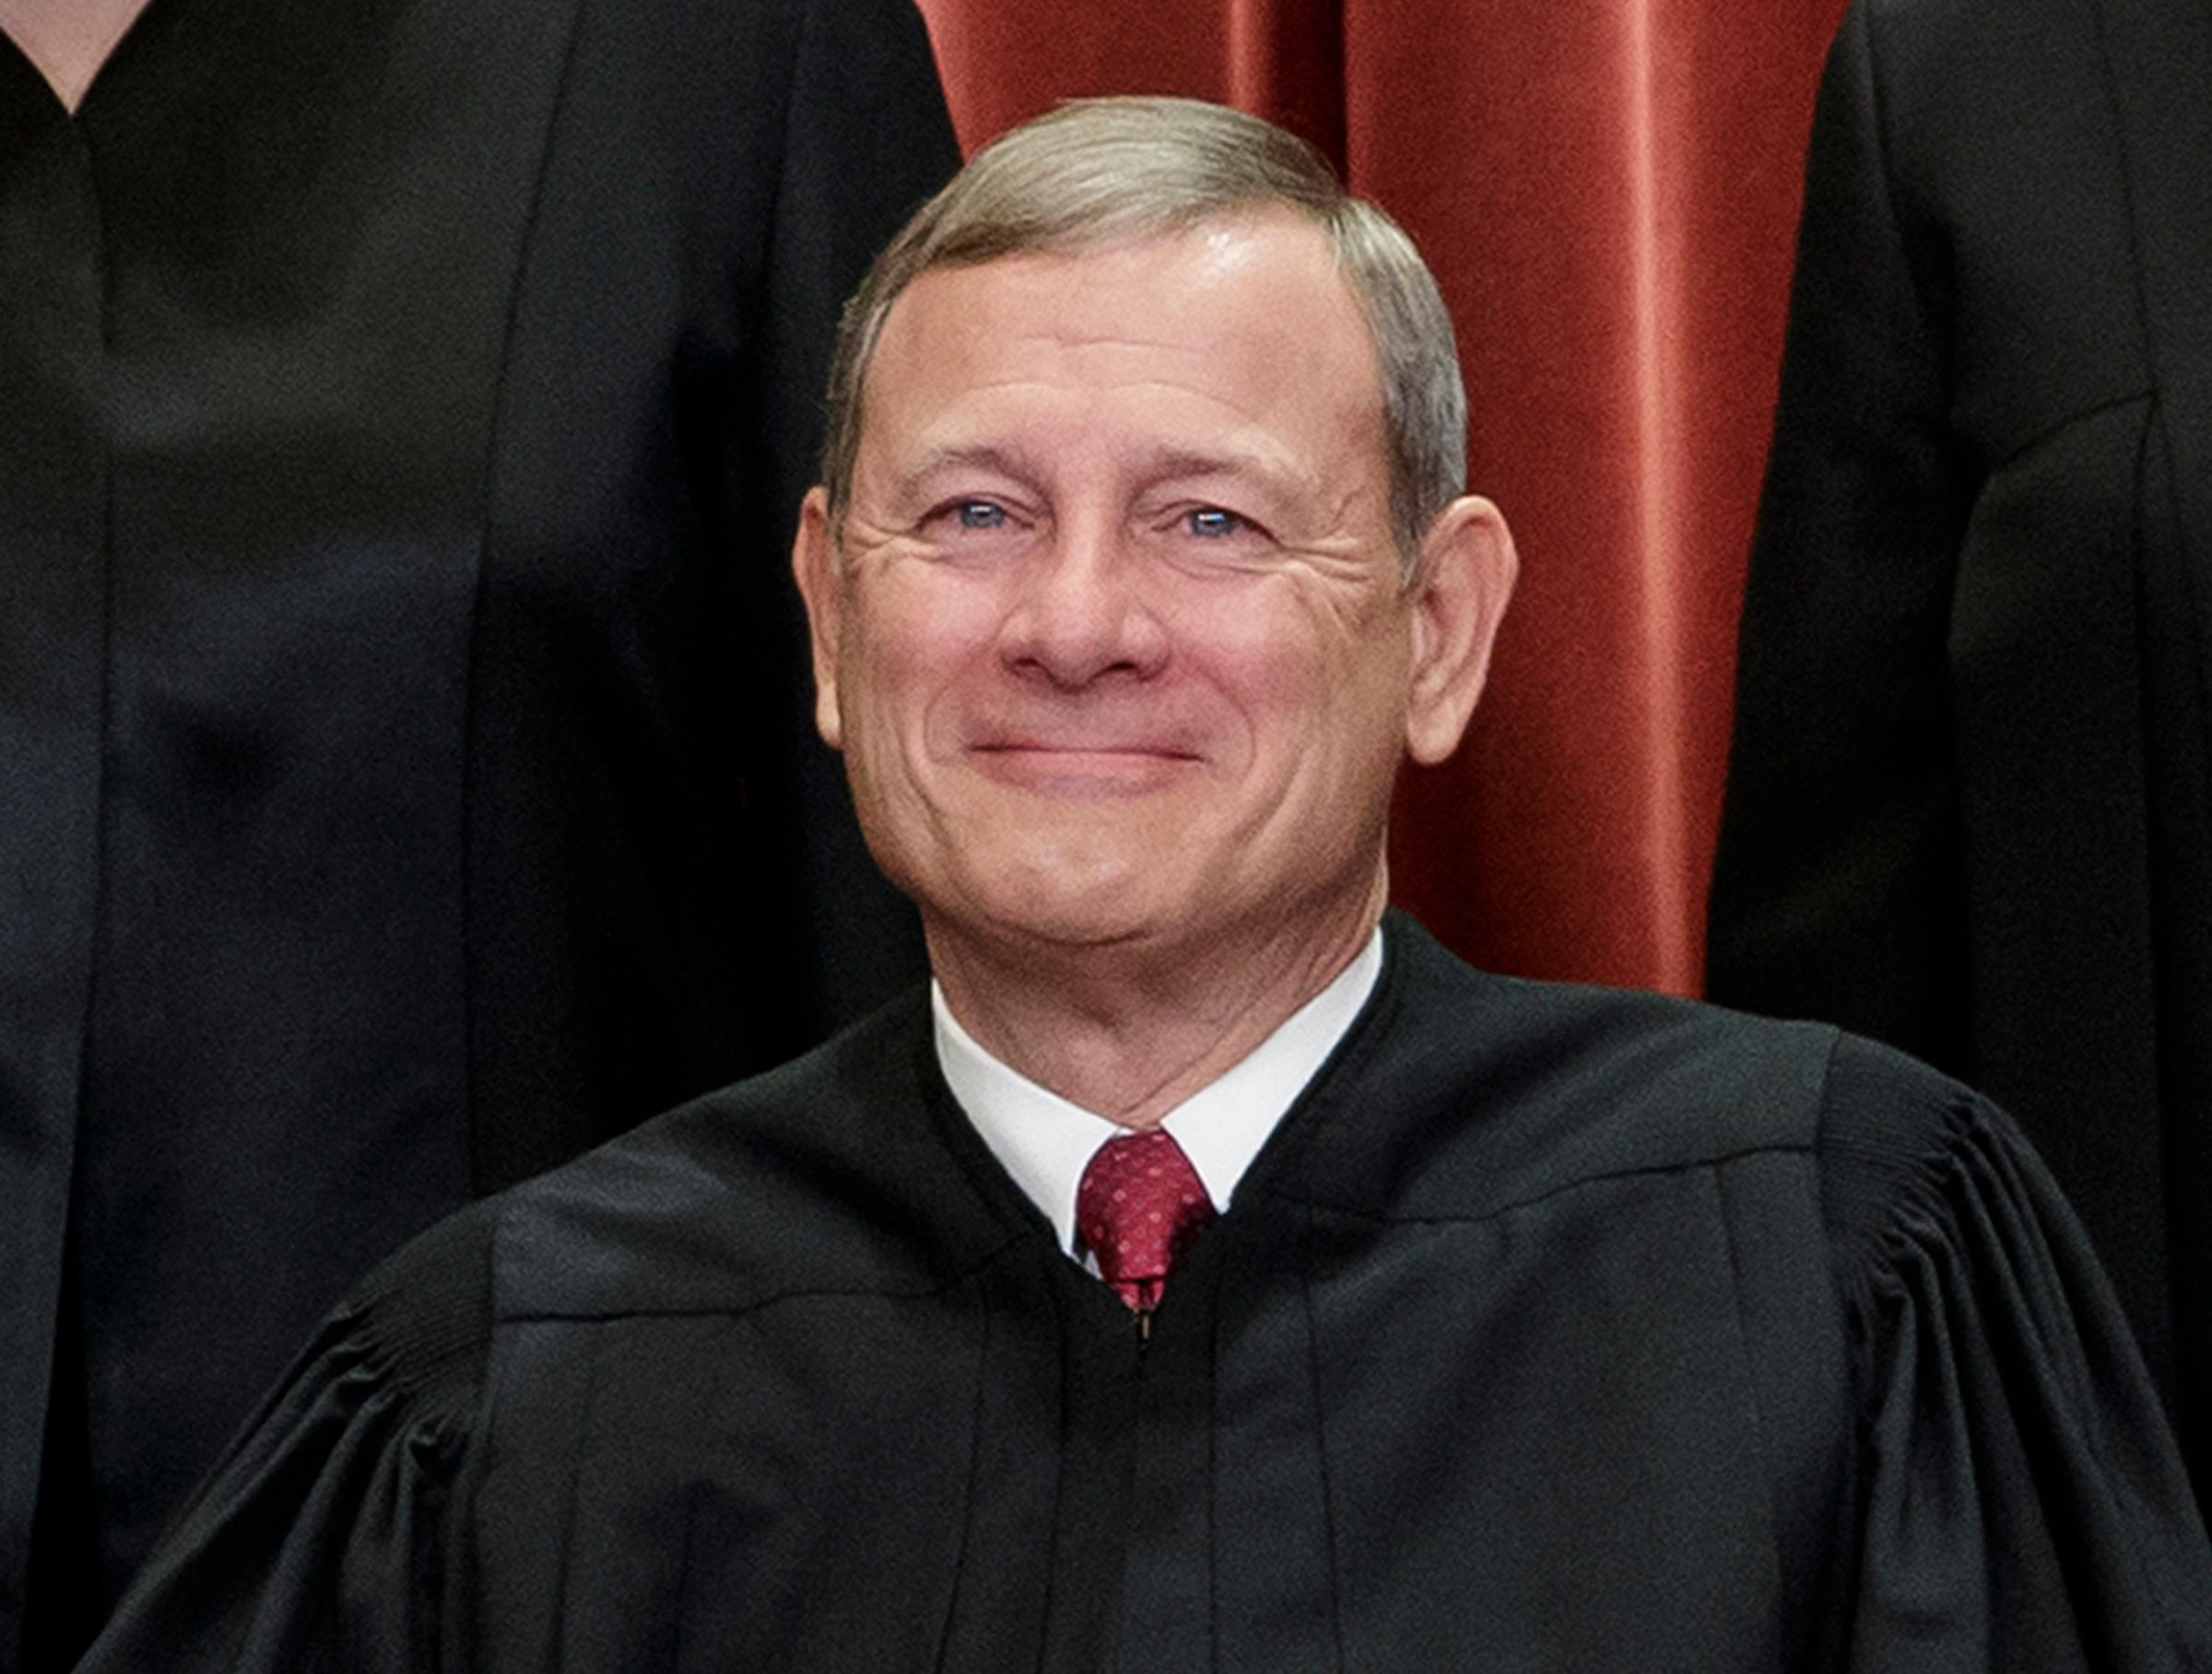 New Book Details Chief Justice Roberts' Backdoor Negotiations To Save Obamacare